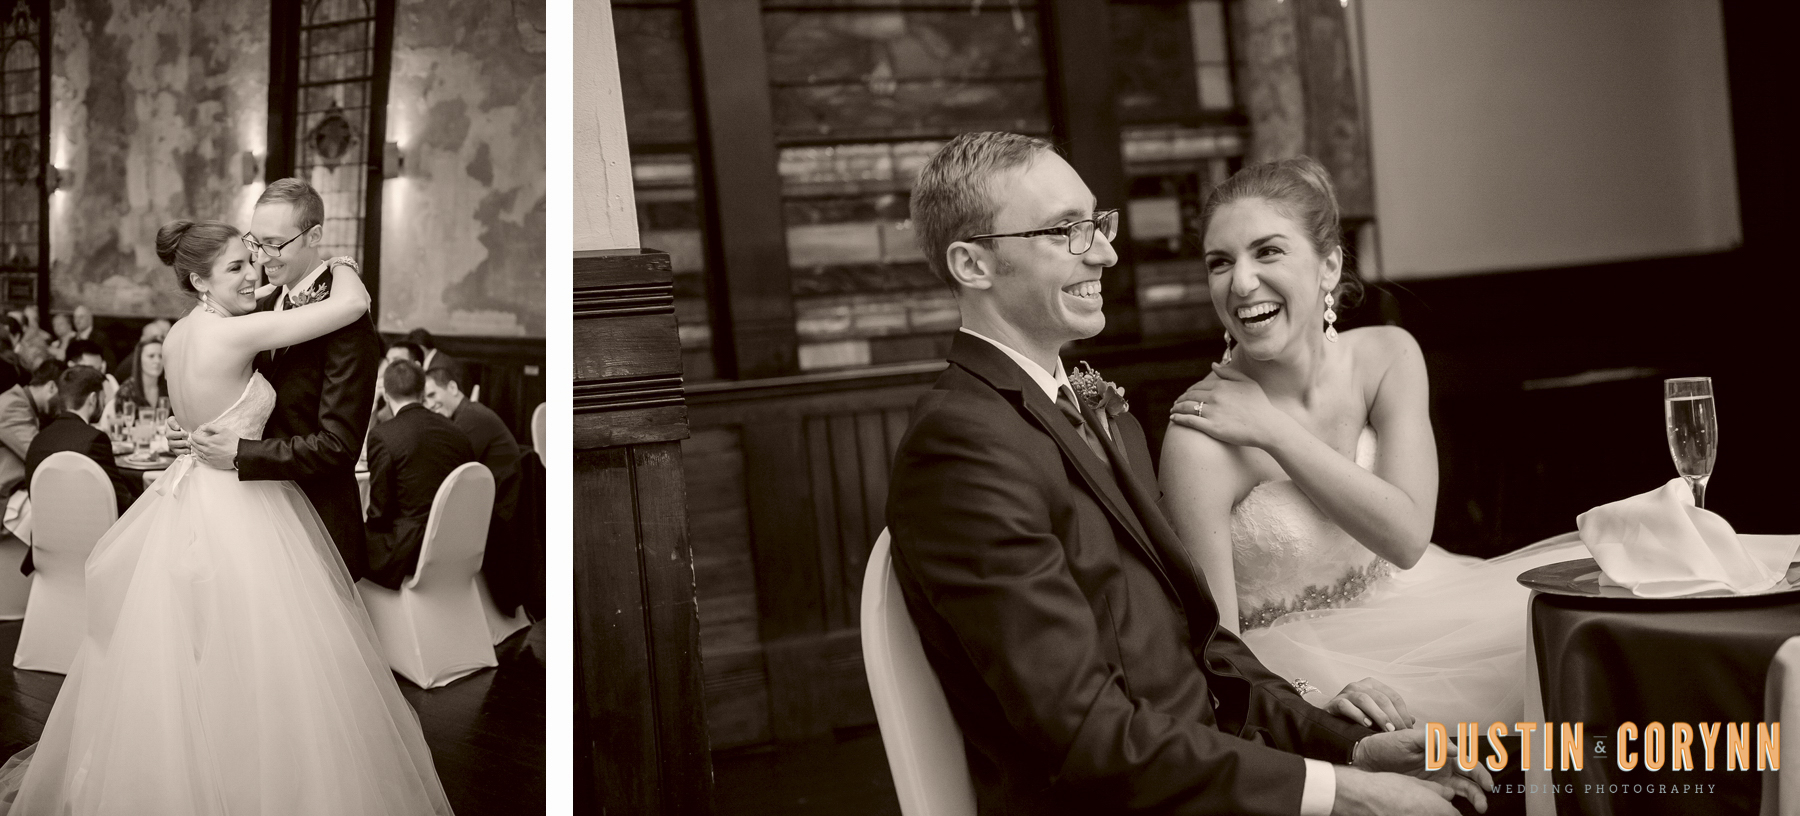 Indianapolis Wedding Photography - Dustin & Corynn Photography